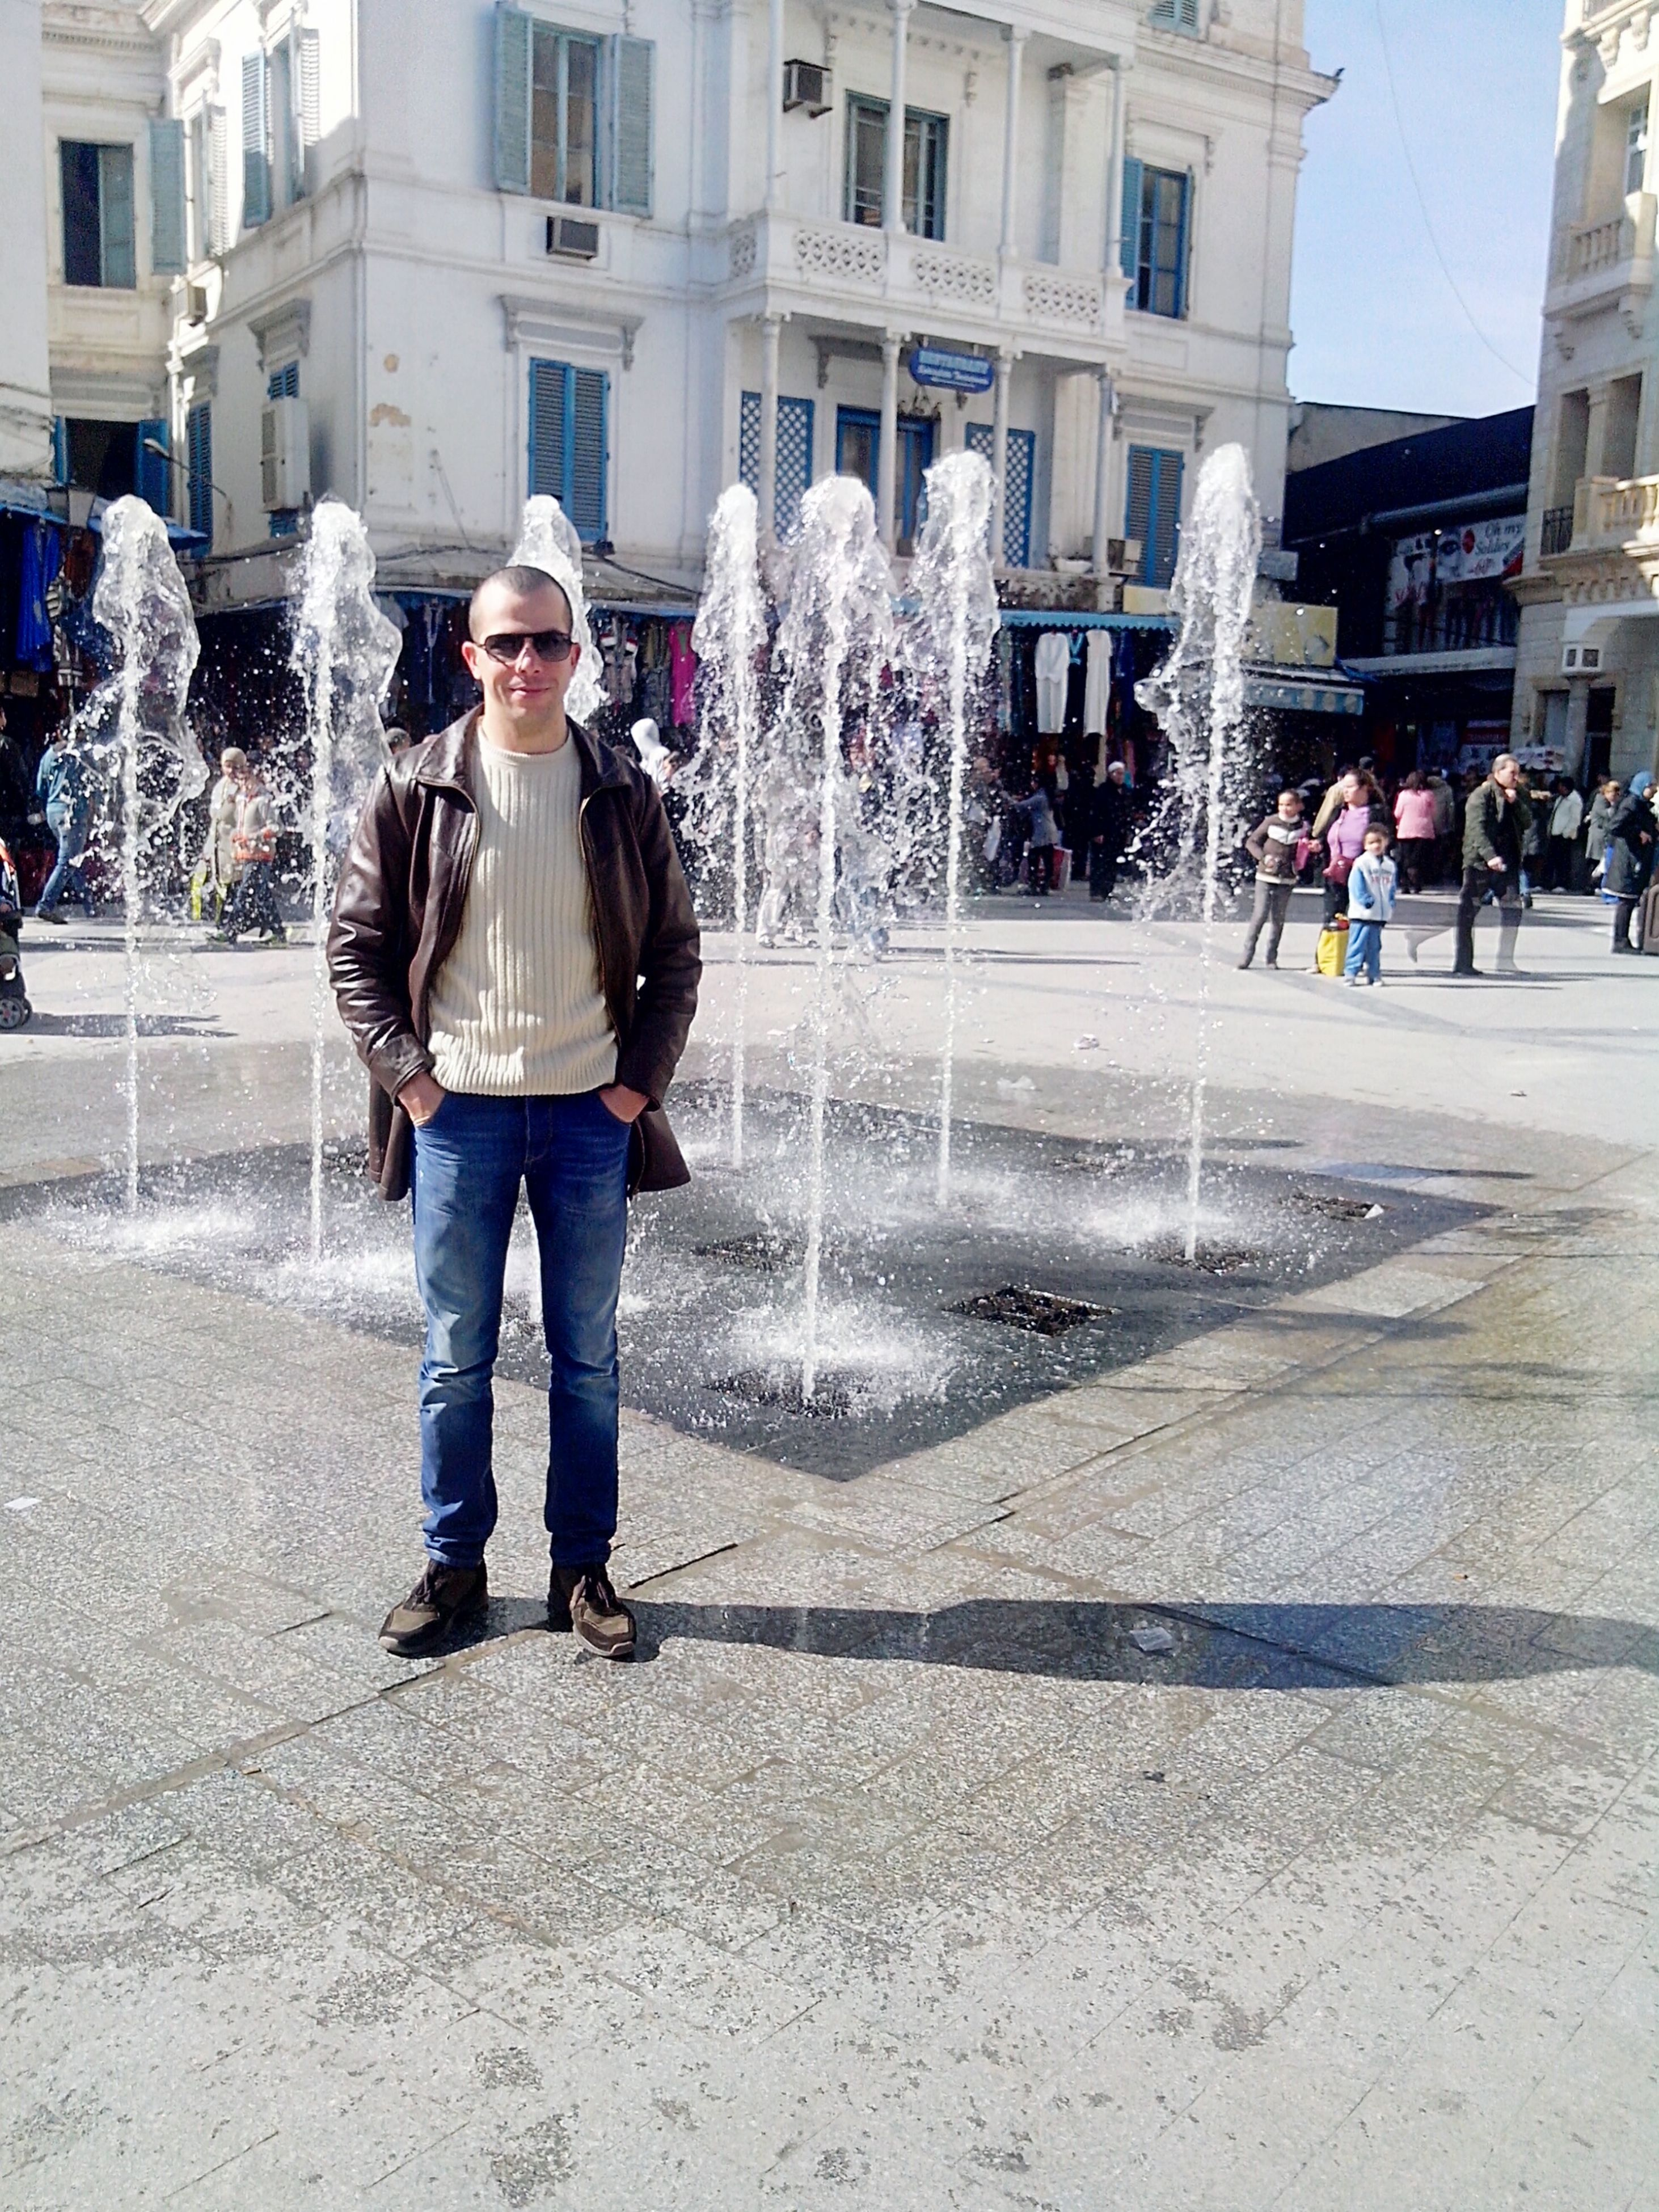 building exterior, architecture, built structure, lifestyles, fountain, leisure activity, city, street, person, men, large group of people, city life, full length, motion, walking, incidental people, casual clothing, spraying